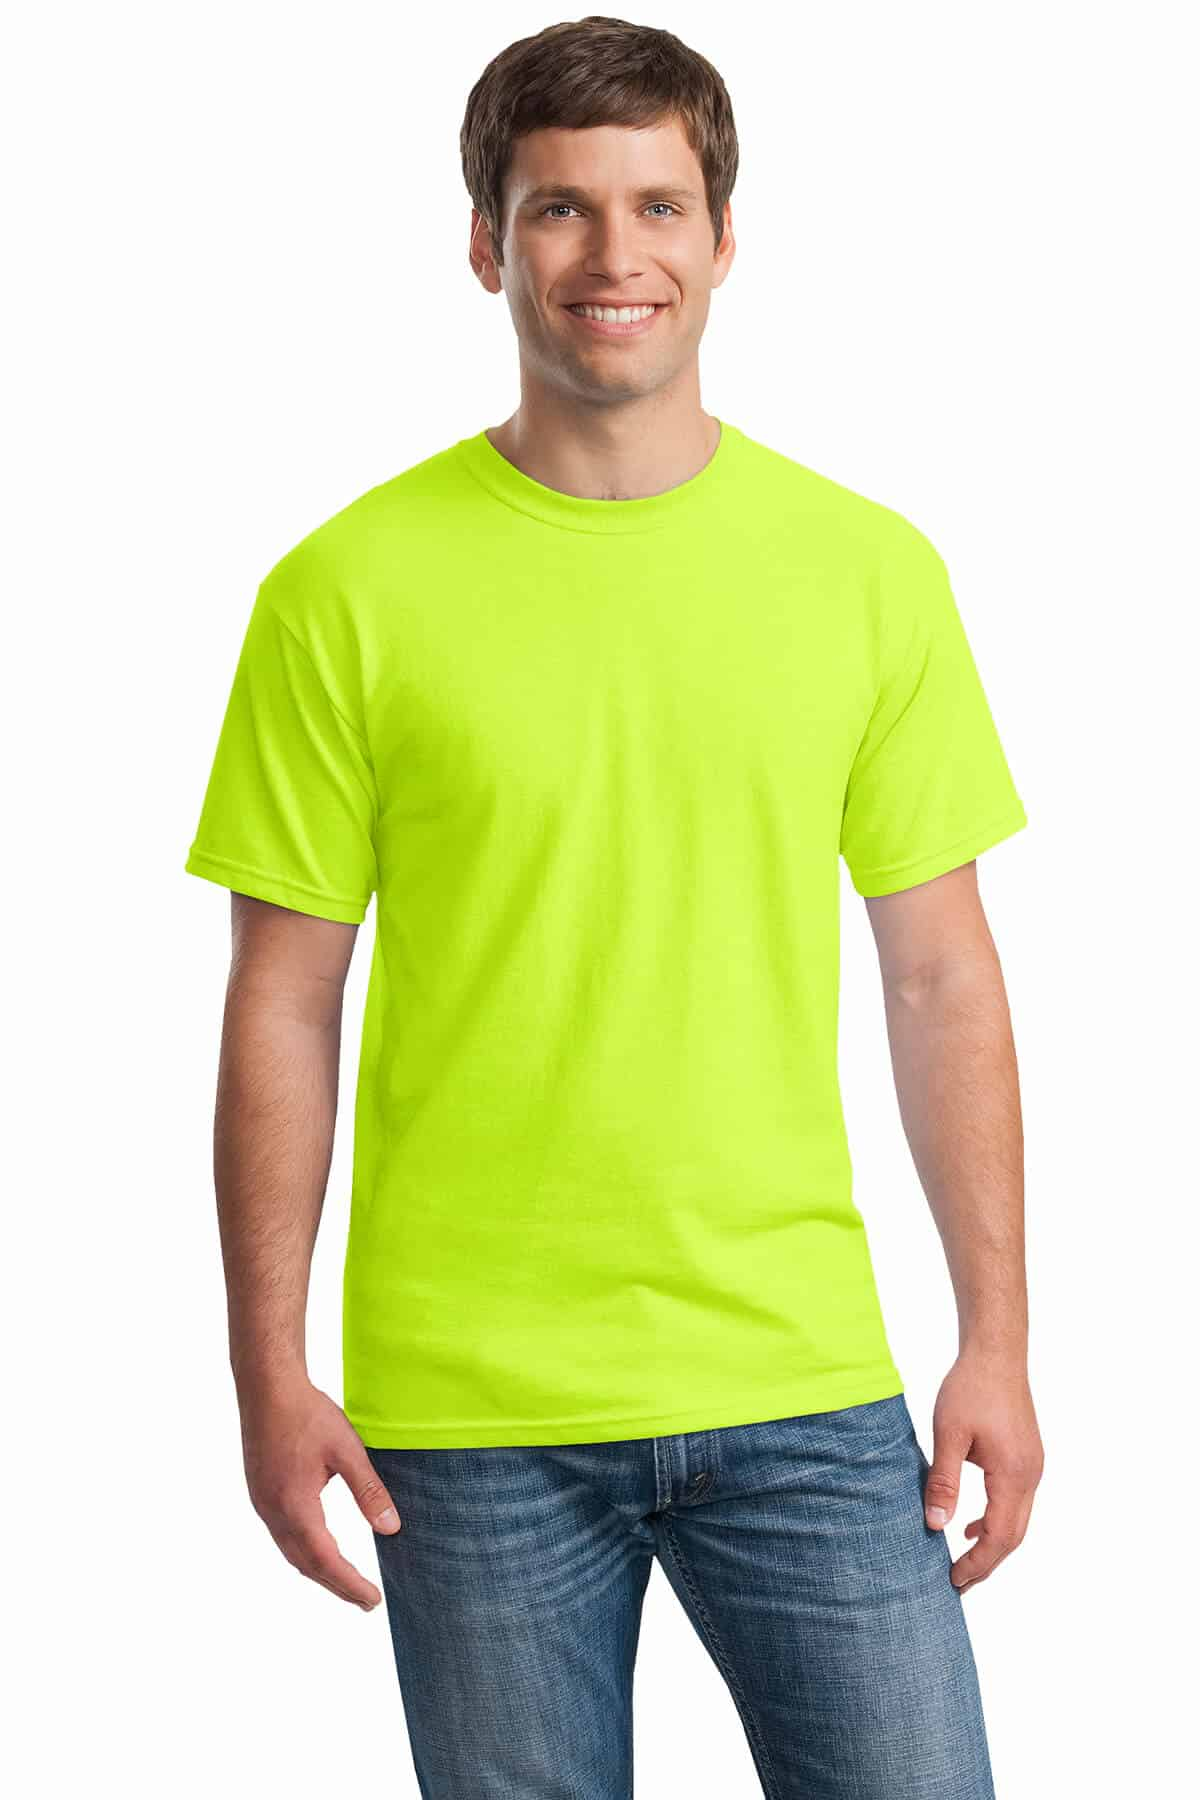 Safety Green Tee Front